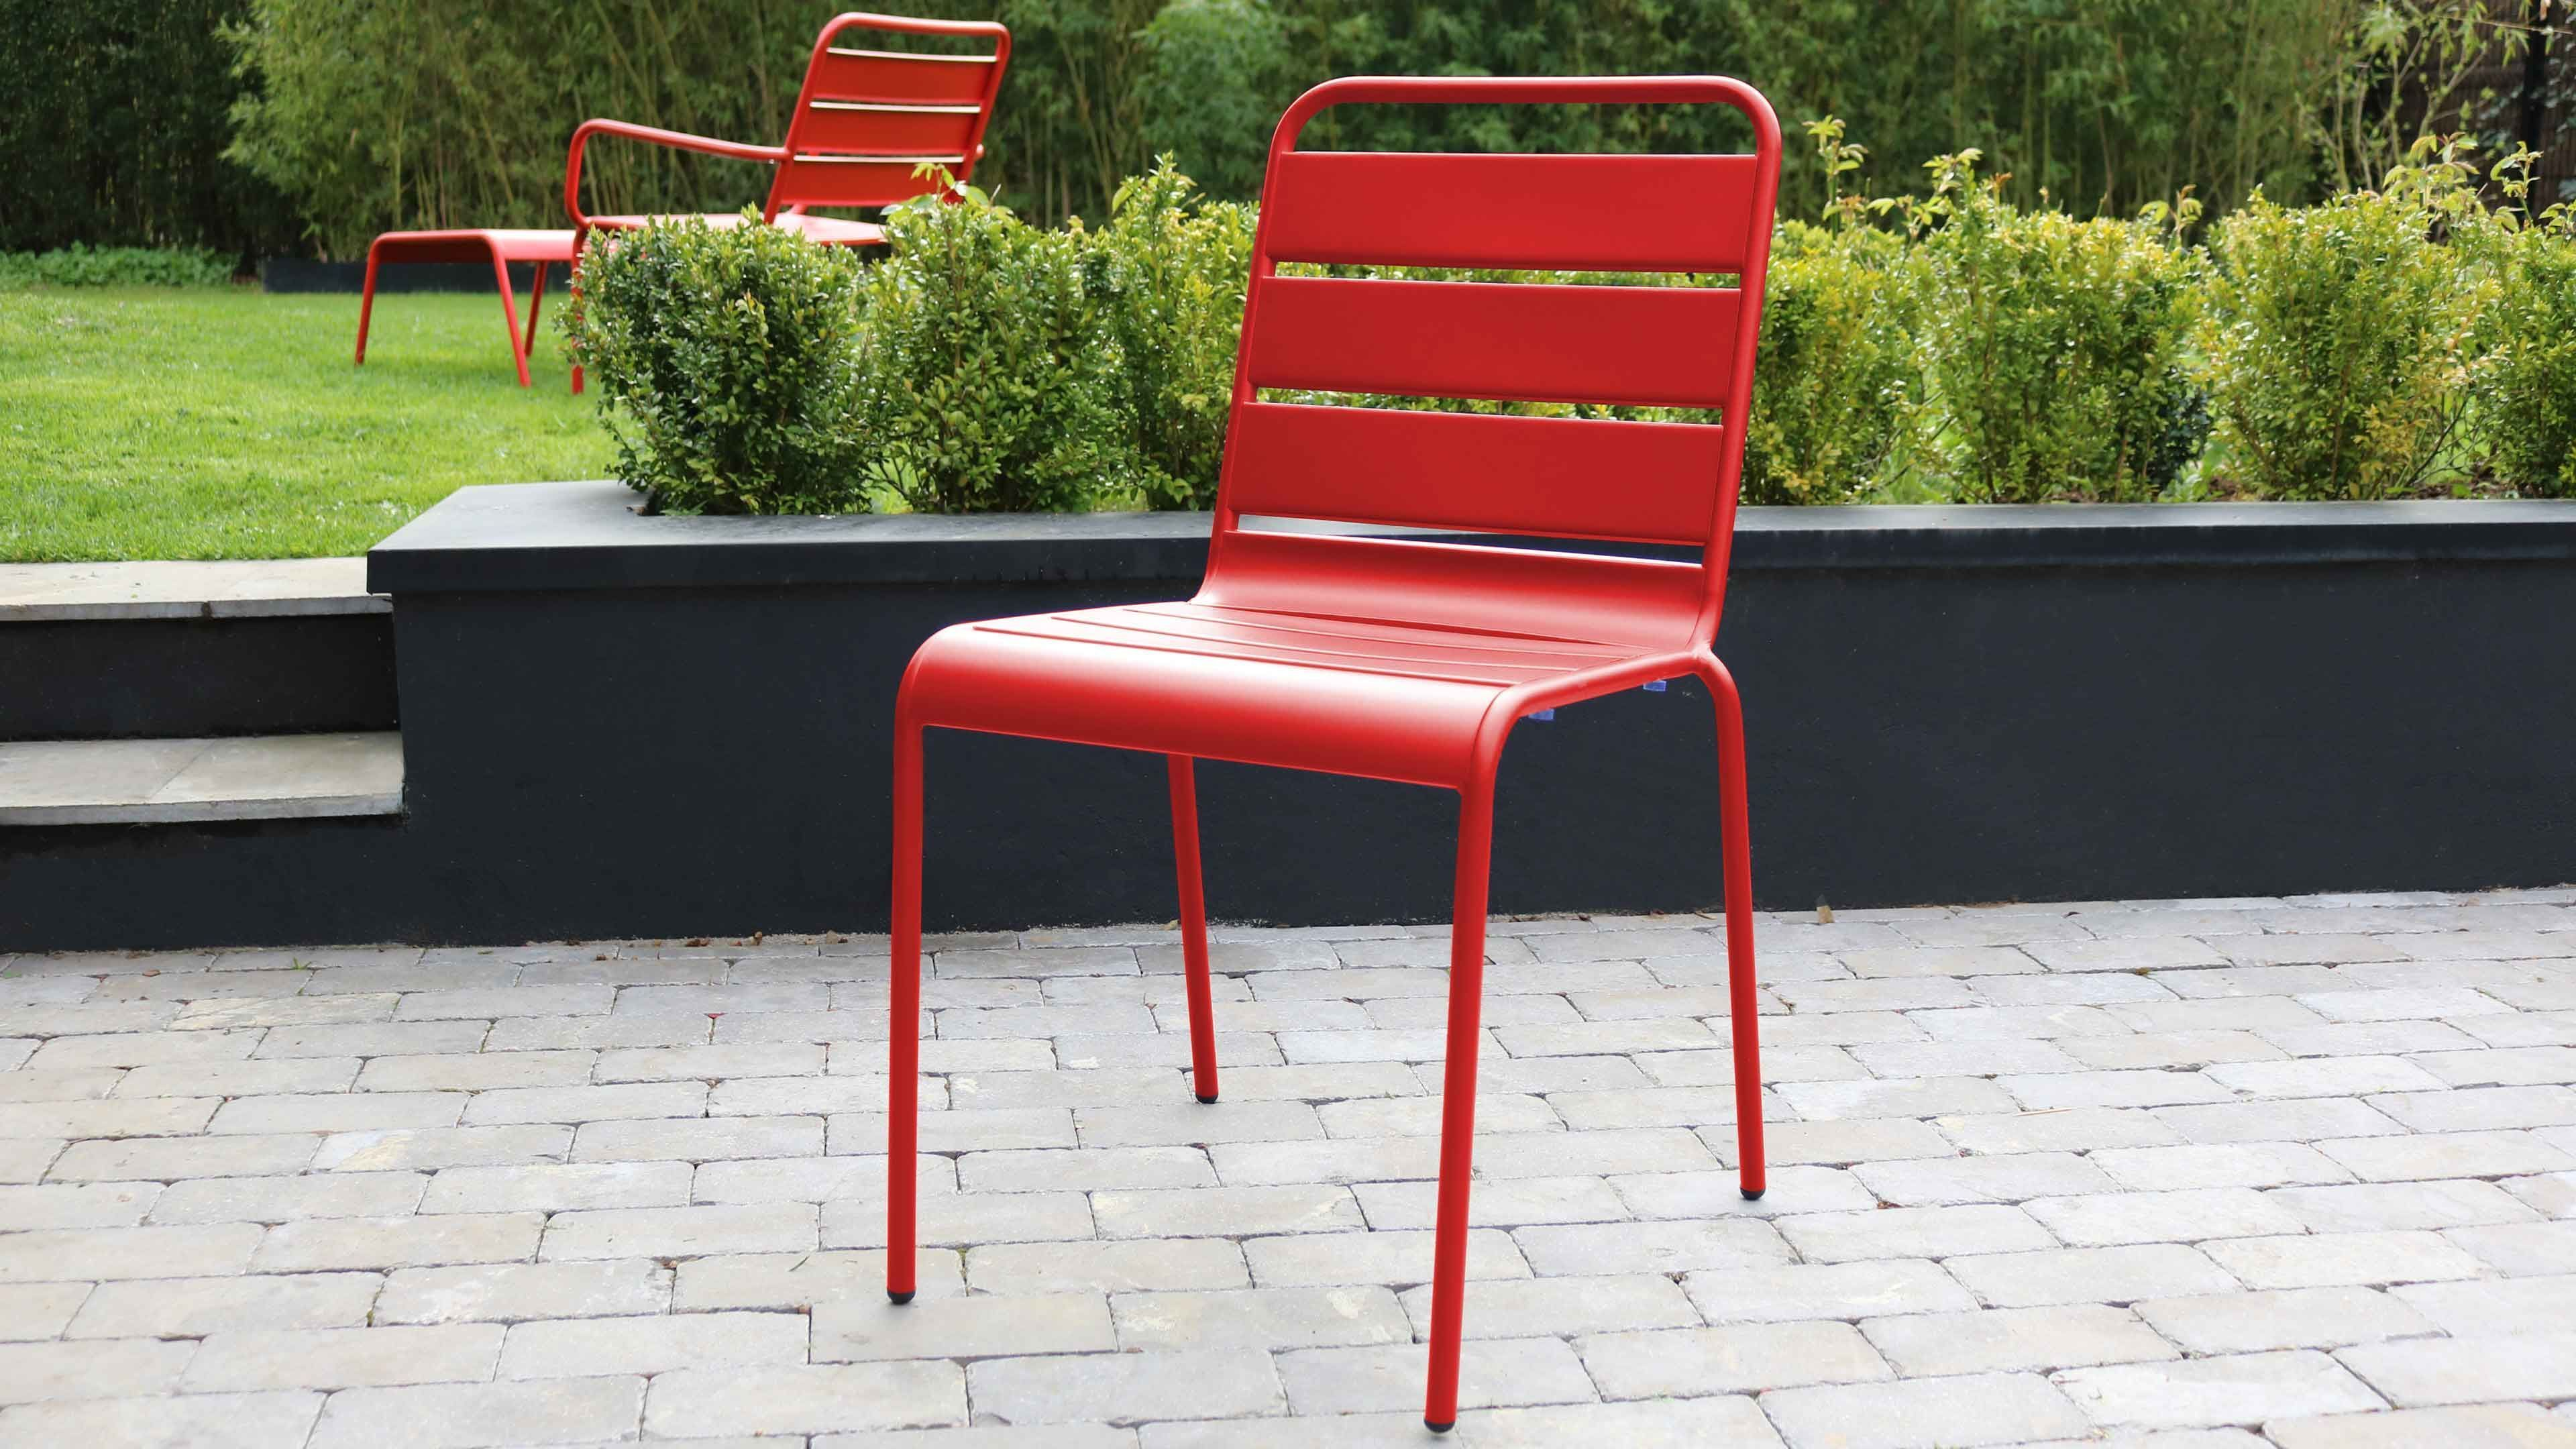 Salon de jardin le rouge nous inspire pour un ext rieur color oviala - Salon de jardin colore ...